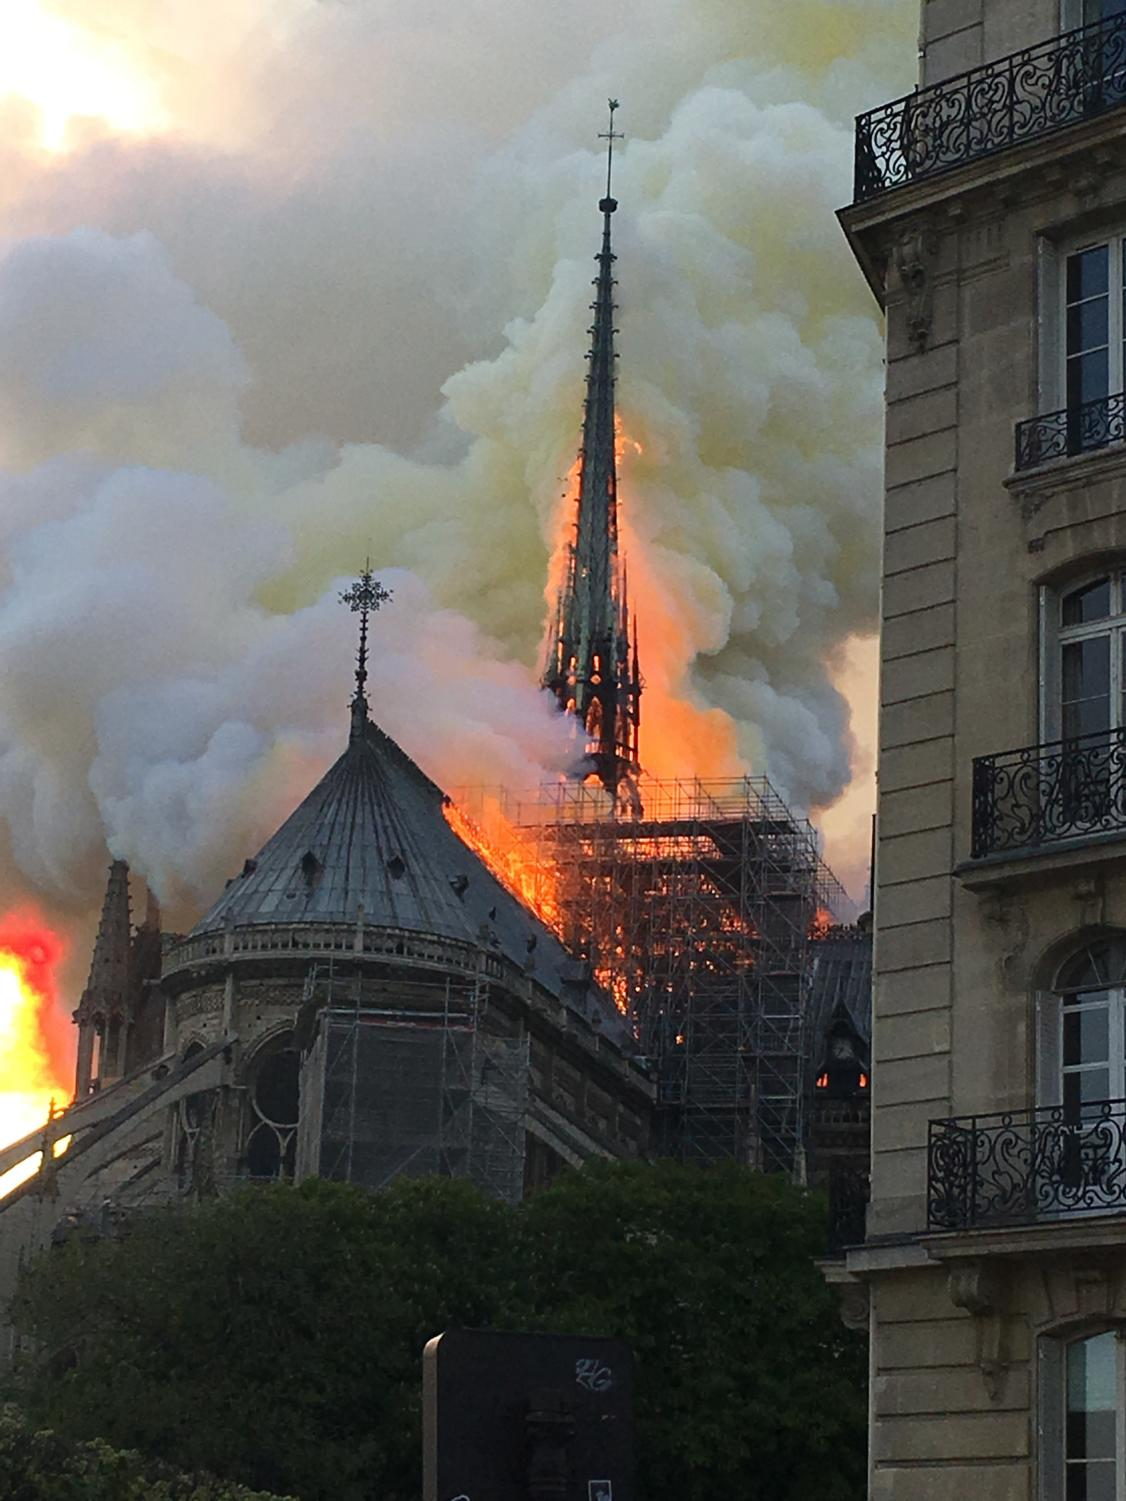 One of the most famous sites in Europe, the Notre Dame, caught on fire on April 15th.